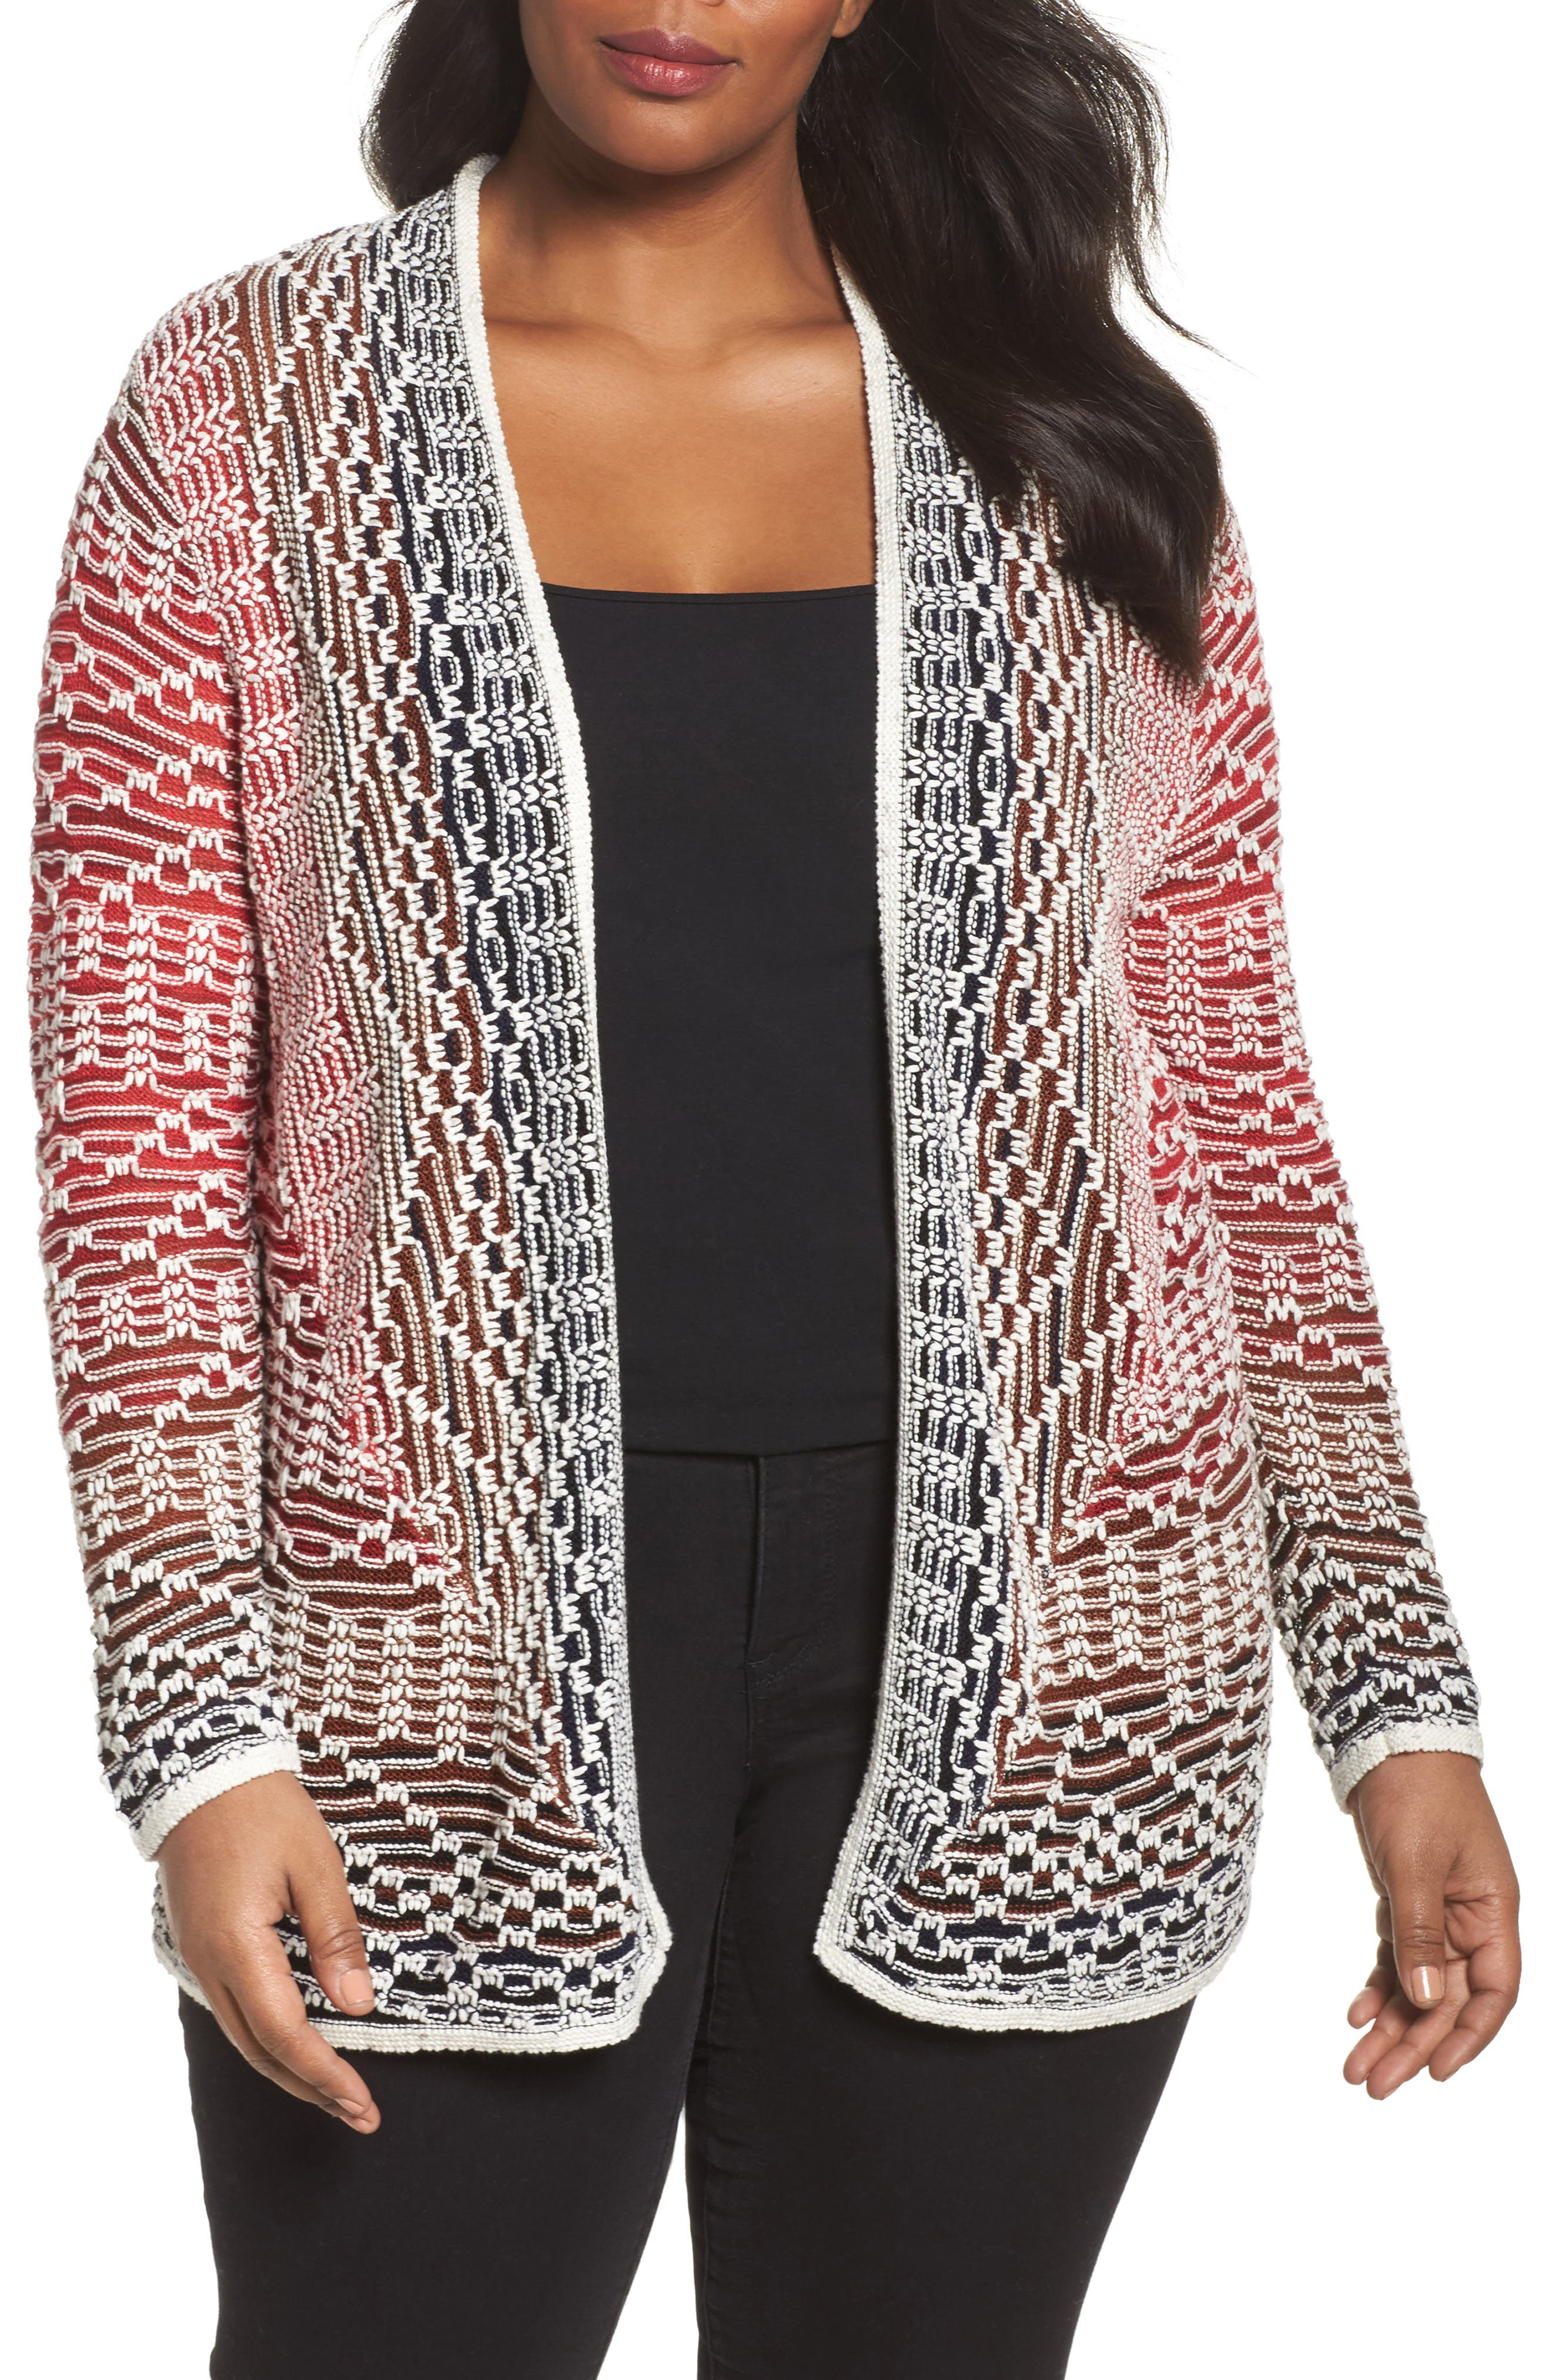 Alternate Image 1 Selected - NIC+ZOE Fireside Cardigan (Plus Size)